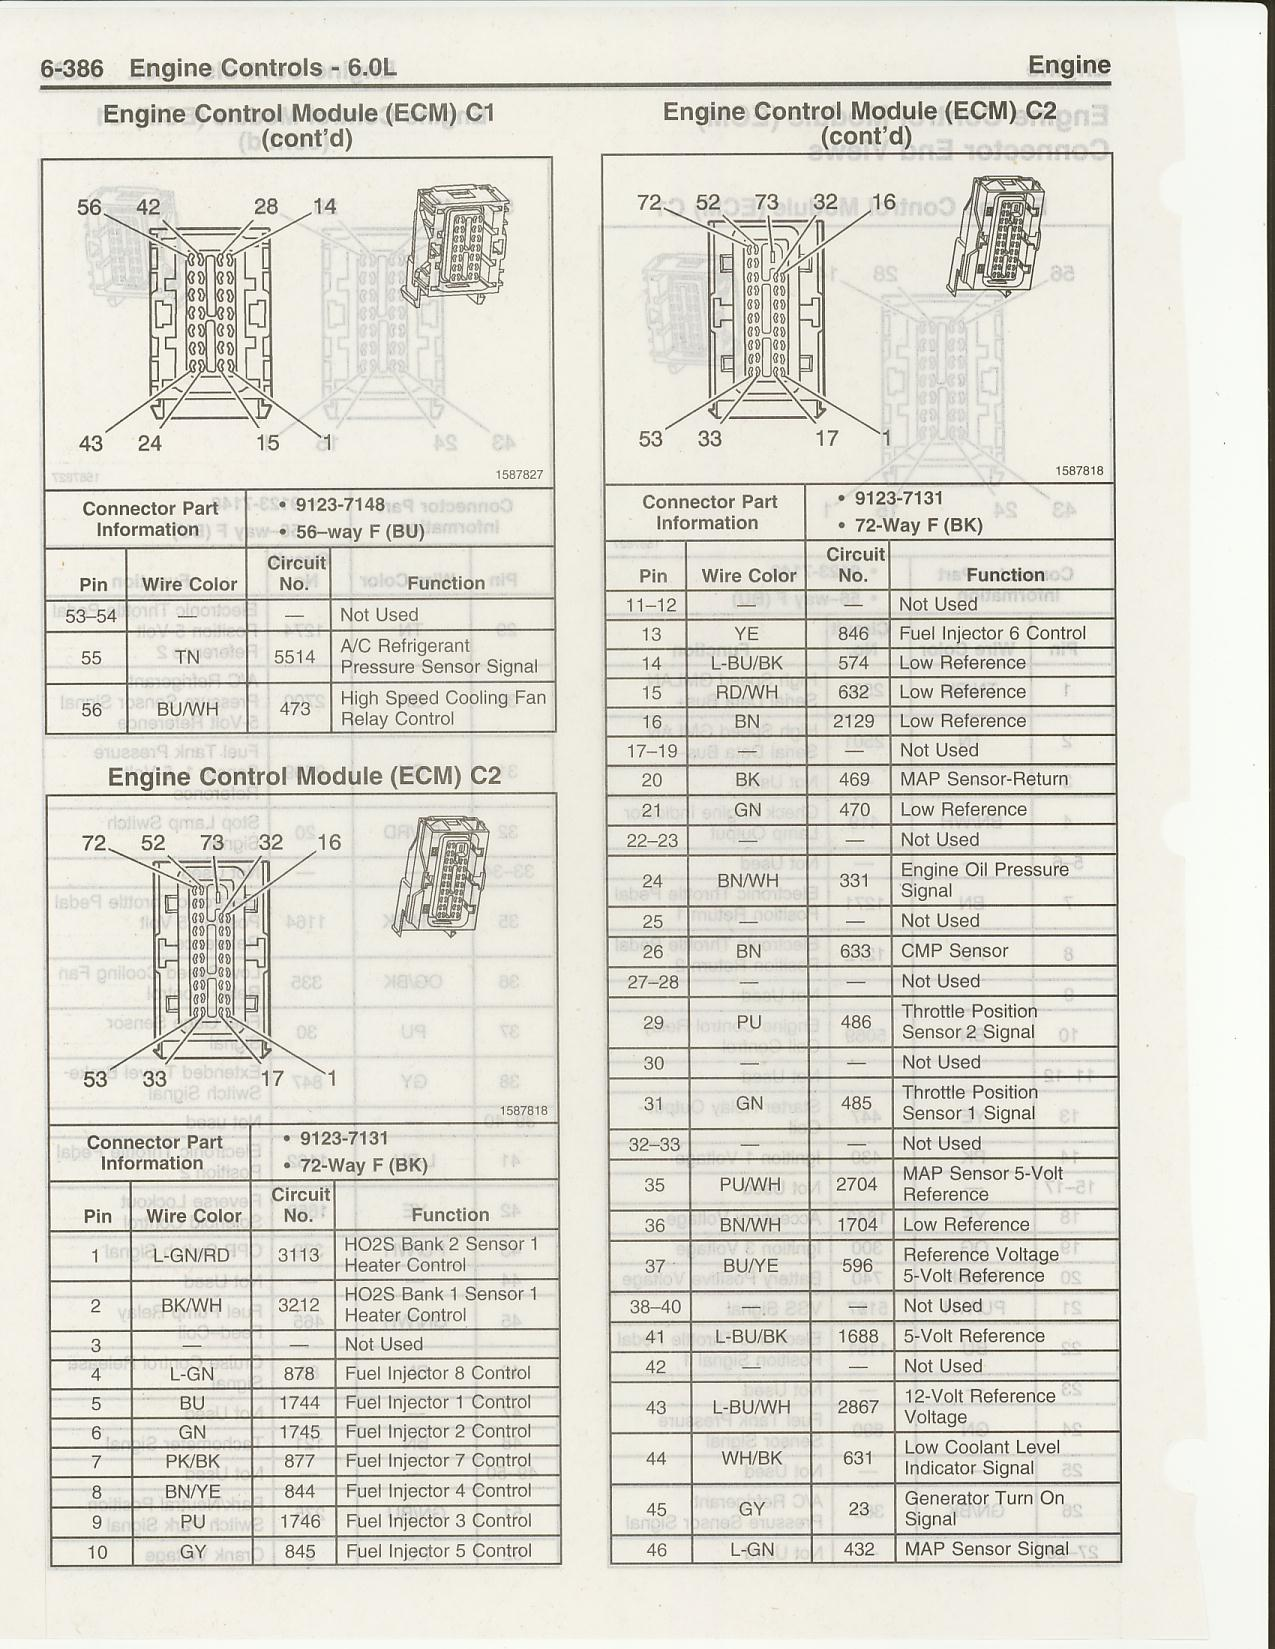 Pinouts And Wiring Diagrams Page 4 Ls1tech Camaro Firebird Chevy S10 Harness Ls2 C1 C2